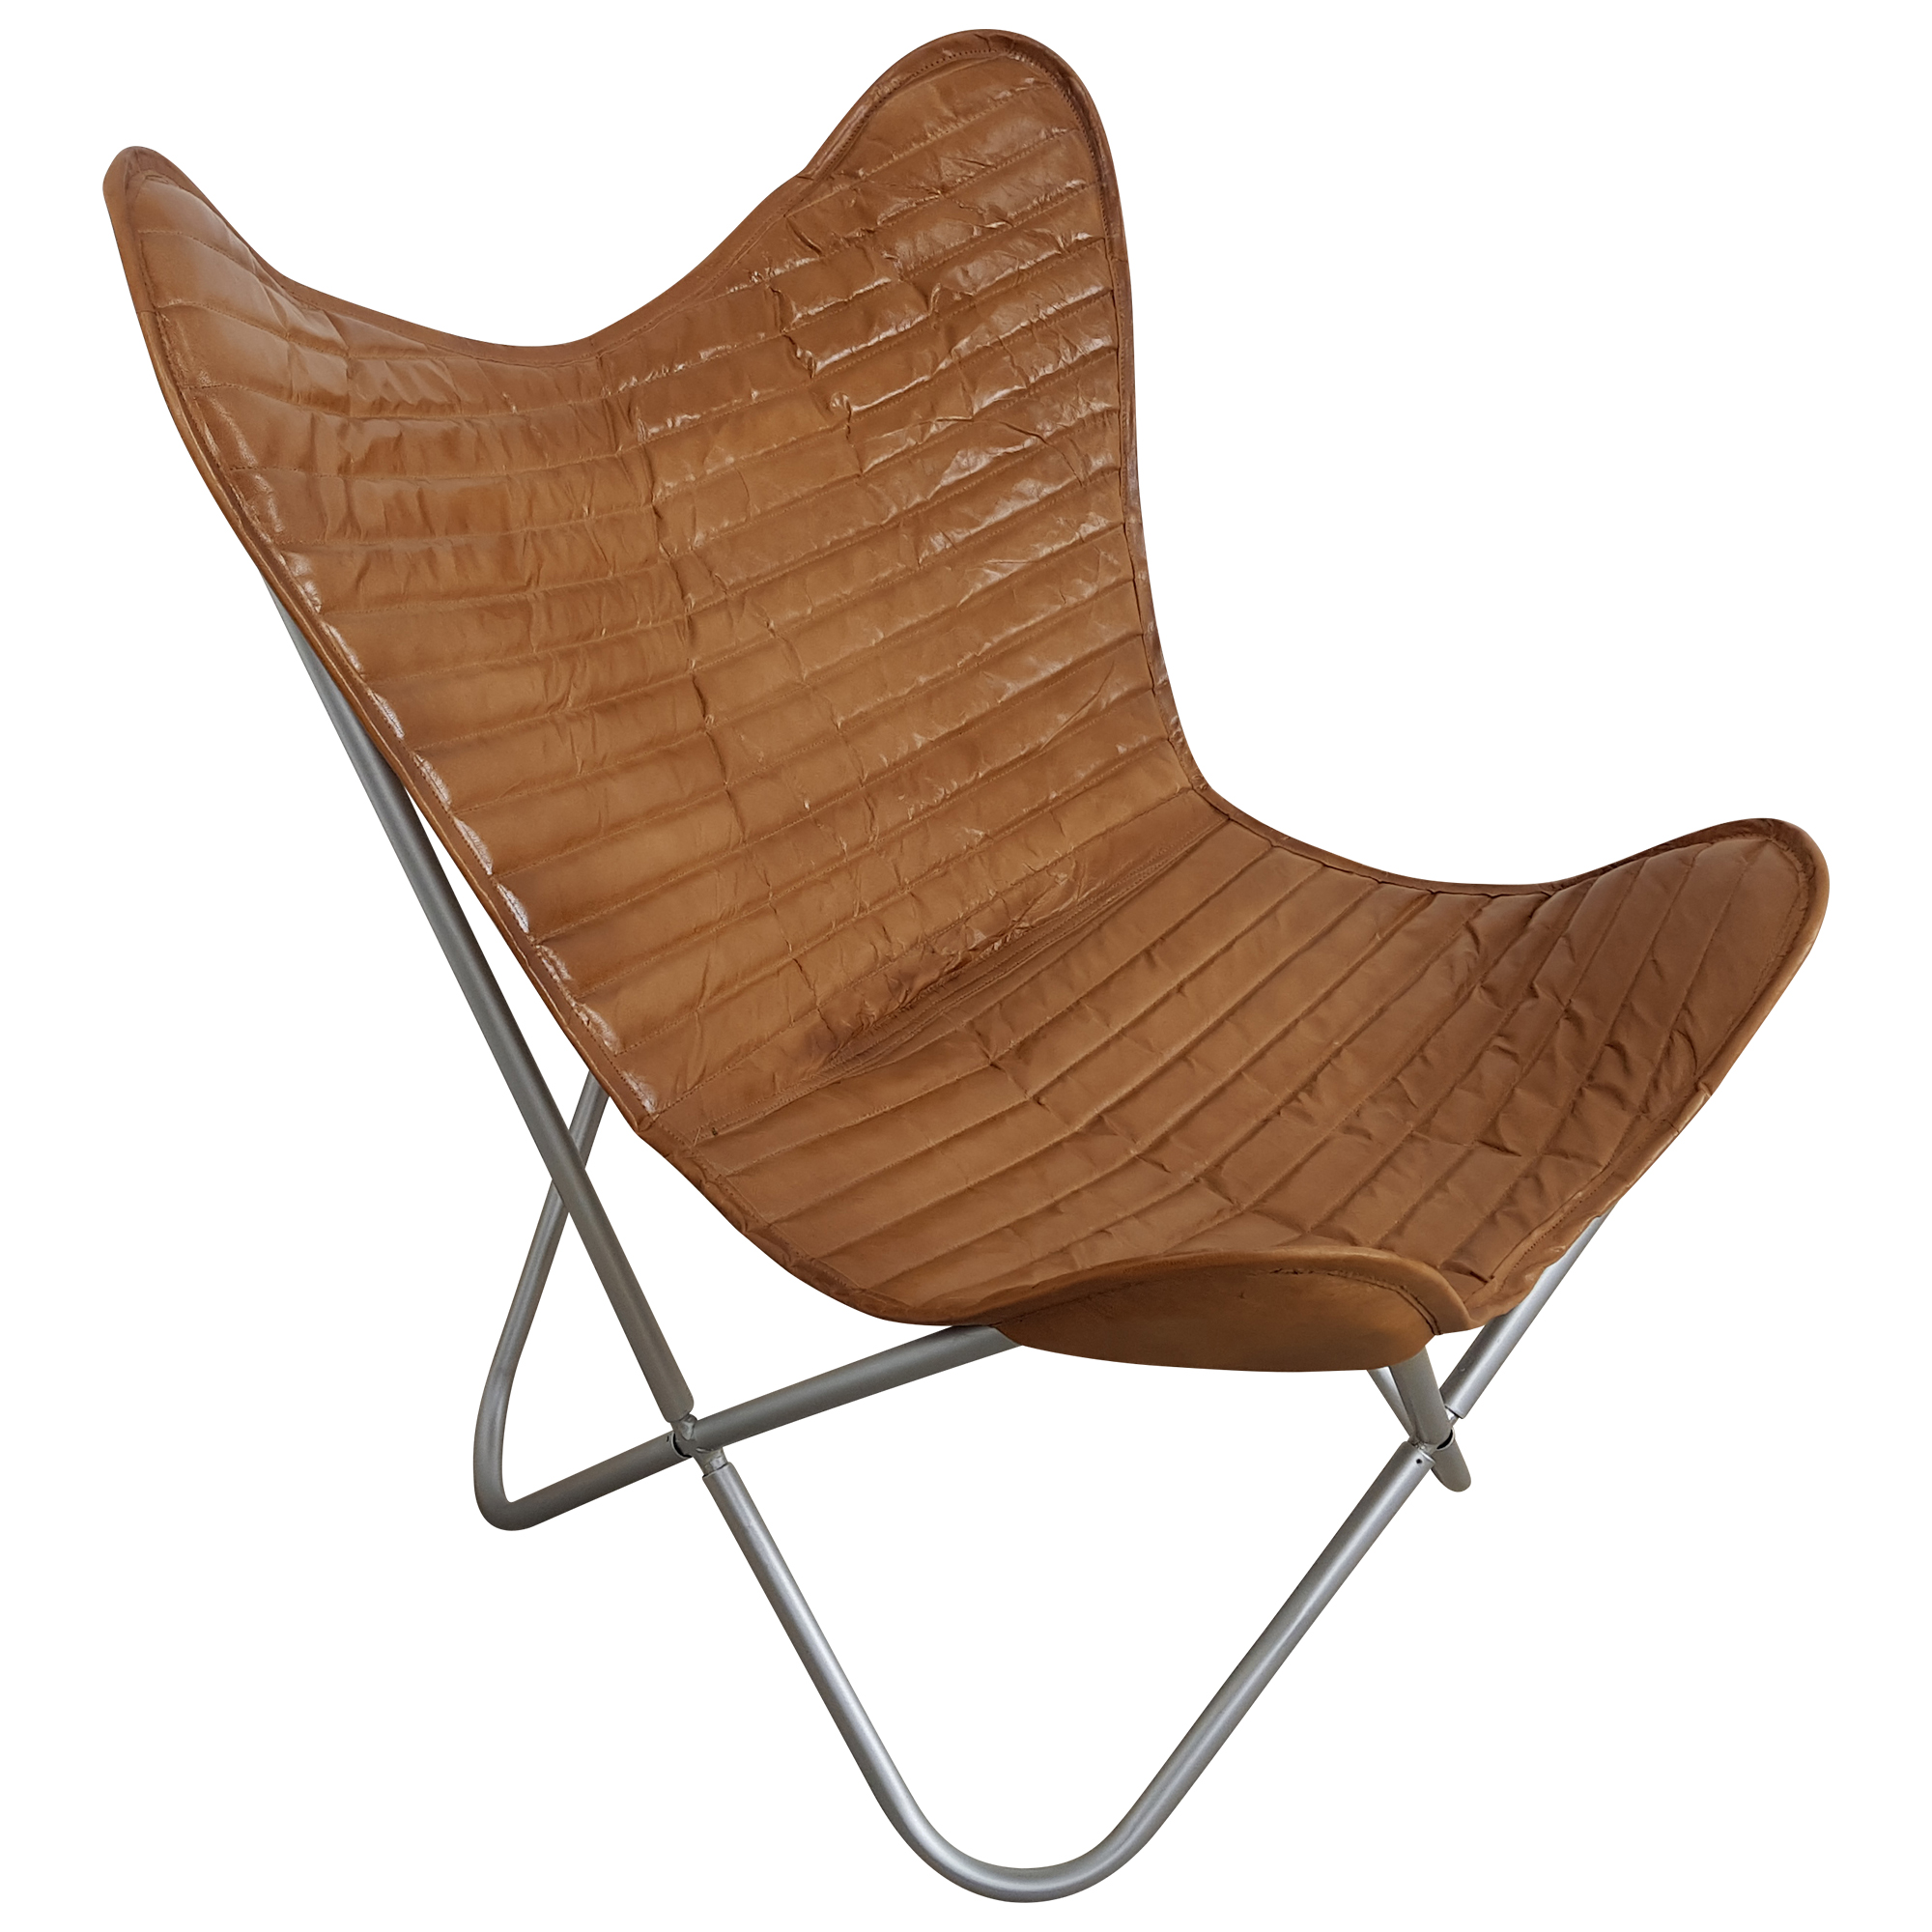 Chair Sessel Butterfly Chair Sessel Design Lounge Stuhl Echt Leder Braun Loungesessel Retro